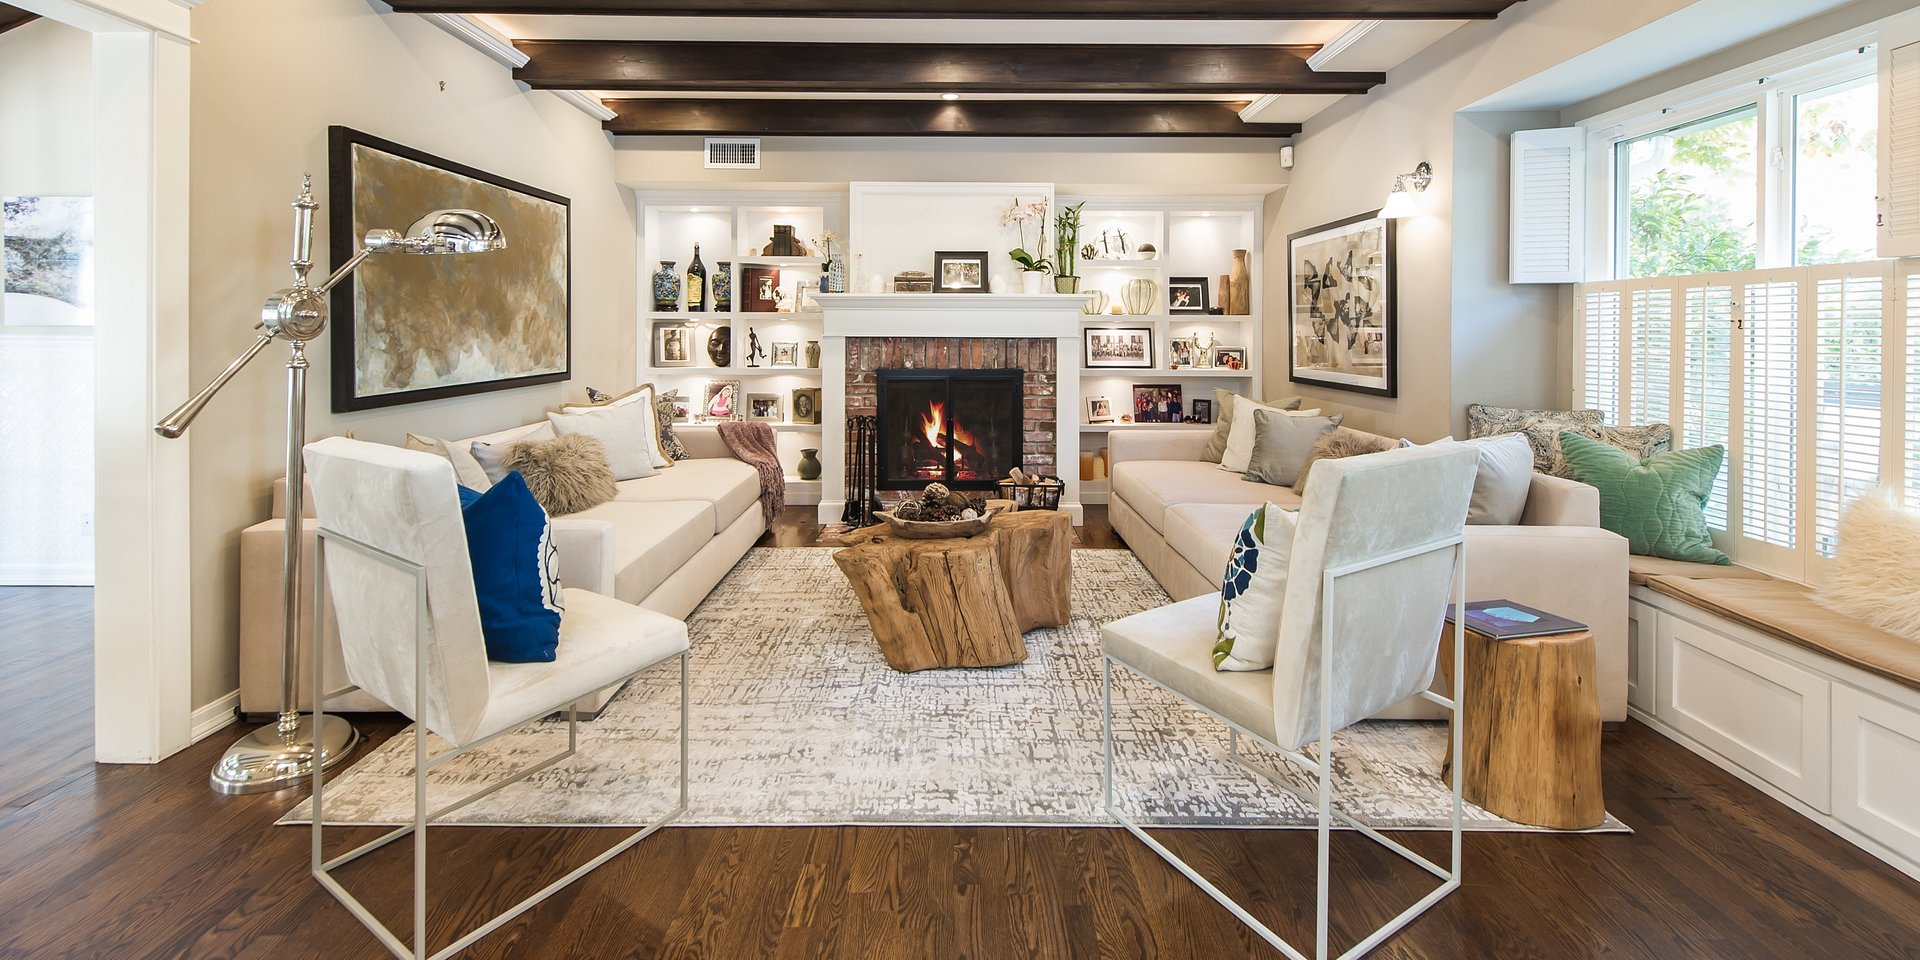 Coldwell Banker Residential Brokerage Lists Bel Air Property for $2.158 Million